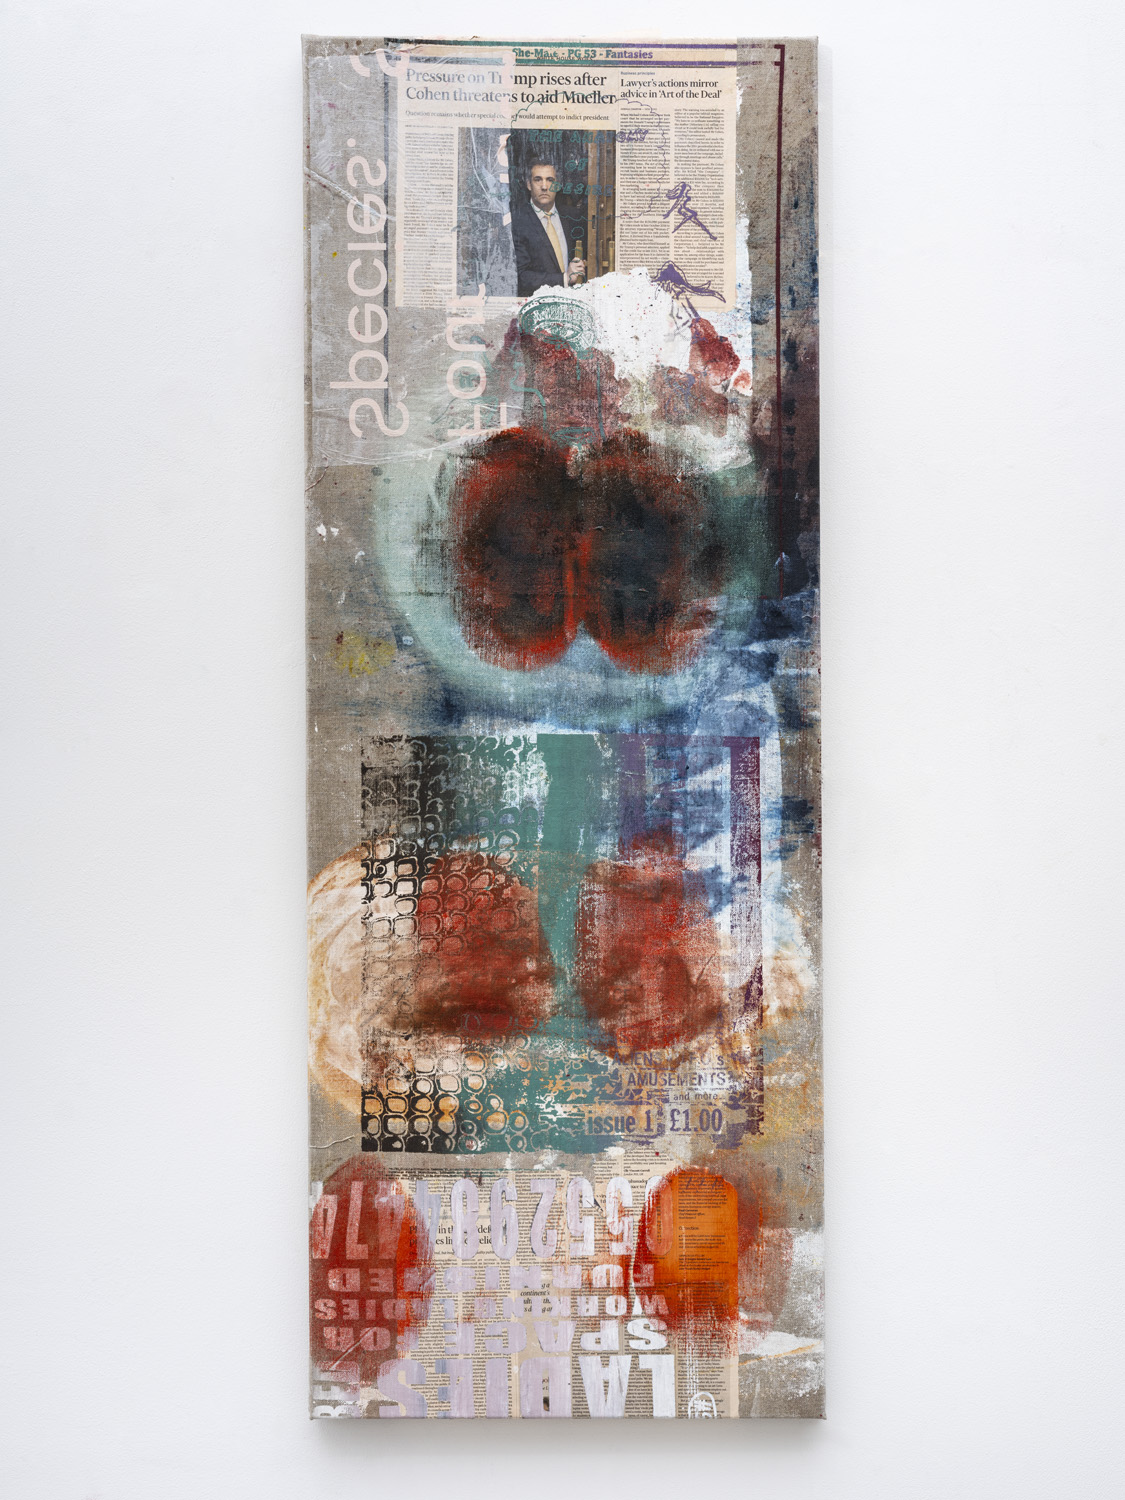 MANDY EL-SAYEGH Proofs (six), 2021 Oil on silkscreened linen and collaged elements 55.12 x 20.47 inches 140 x 52 cm Courtesy the artist and Lehmann Maupin, New York, Hong Kong, Seoul, and London